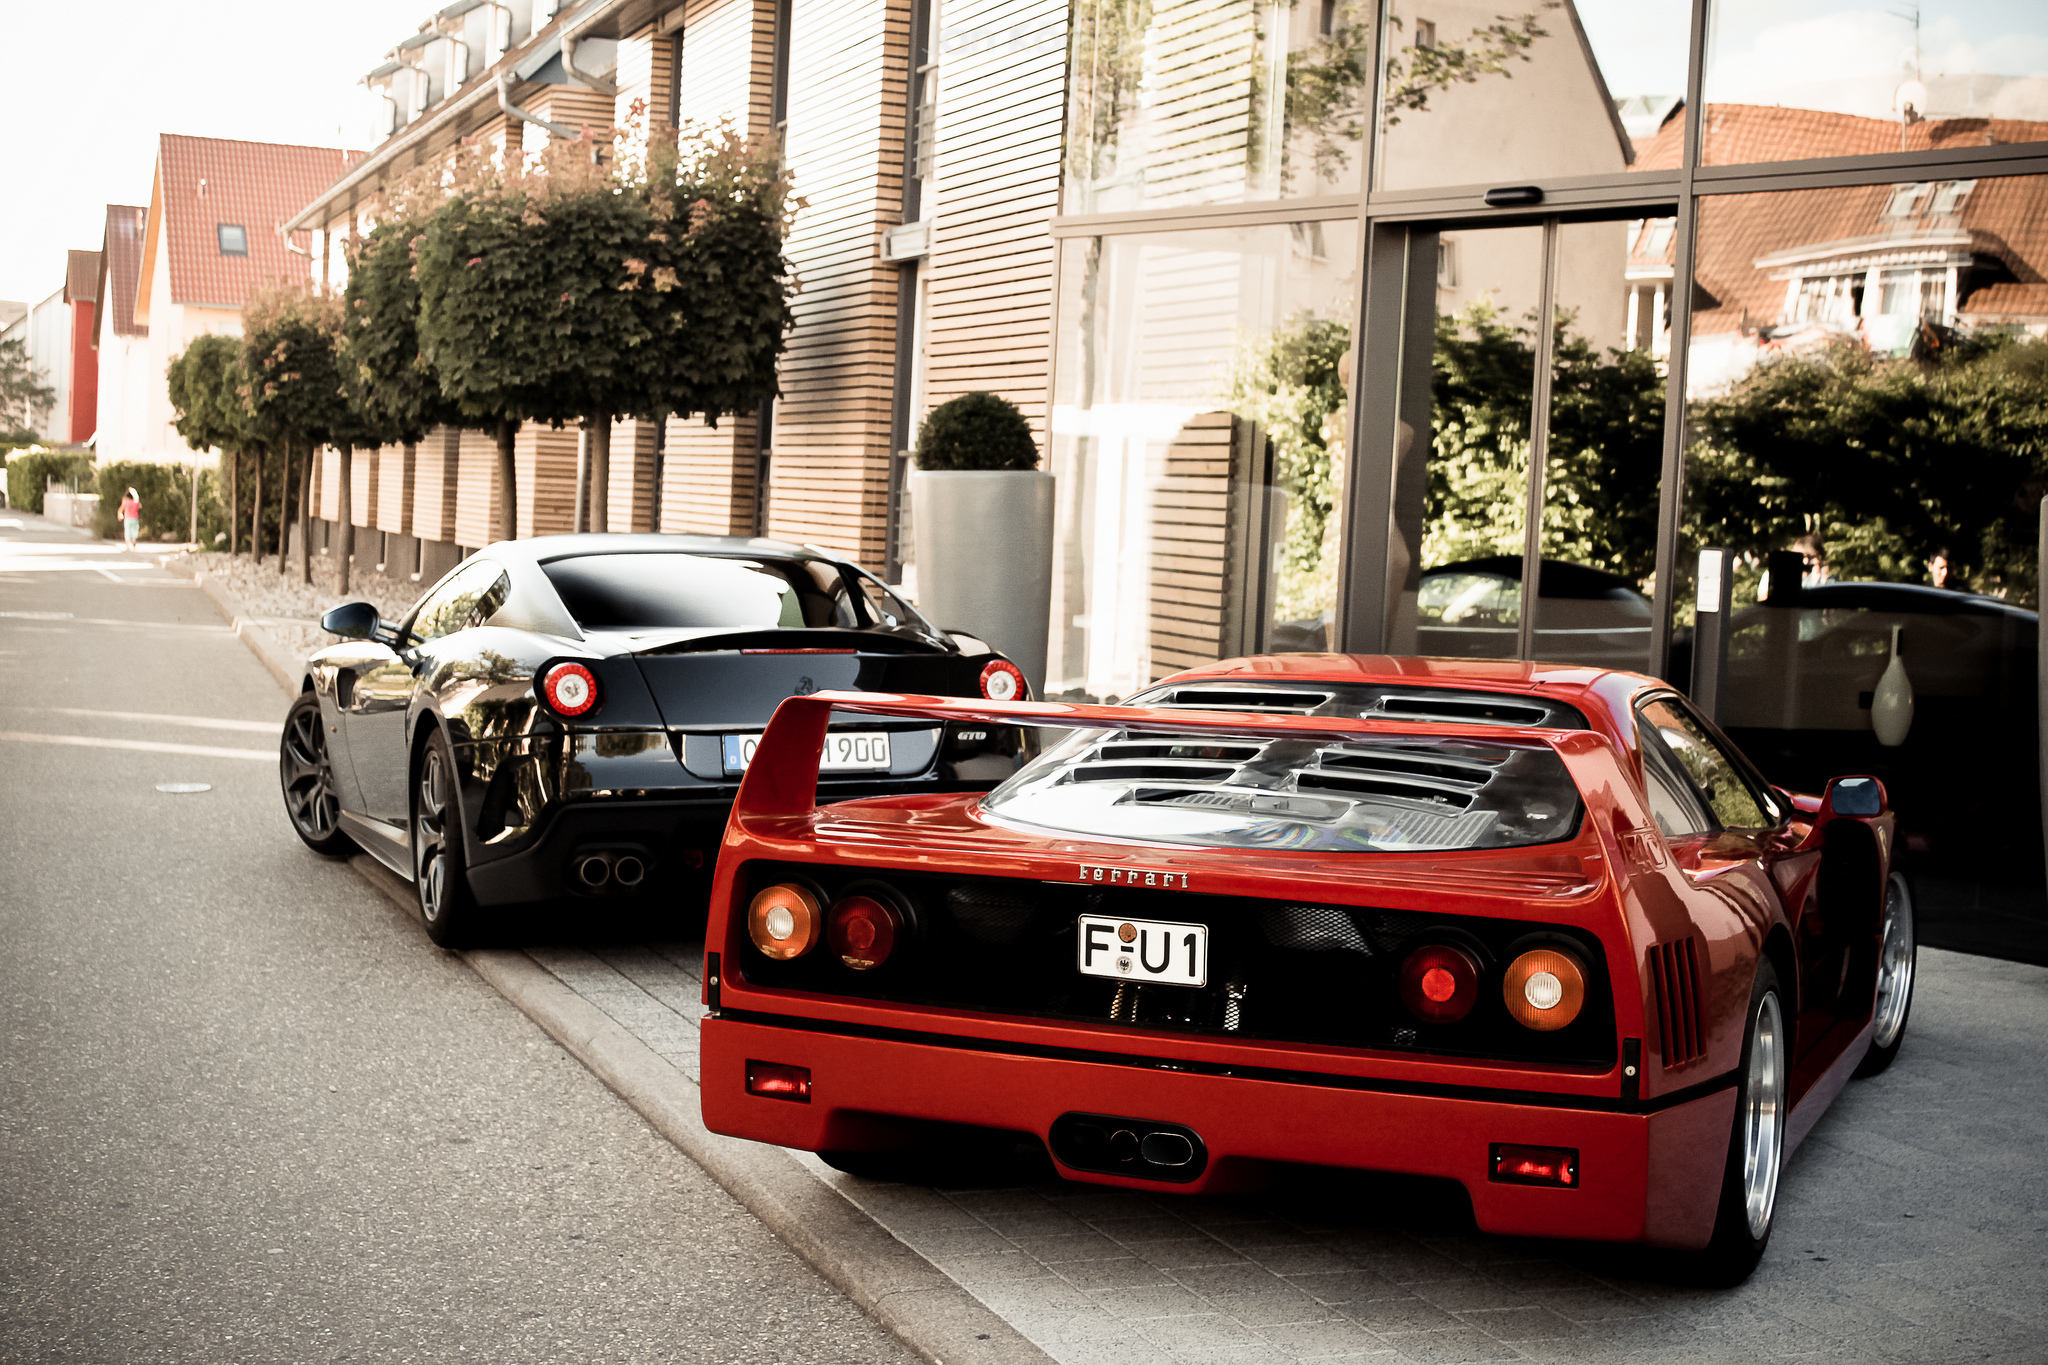 red and black ferrari - photo #47